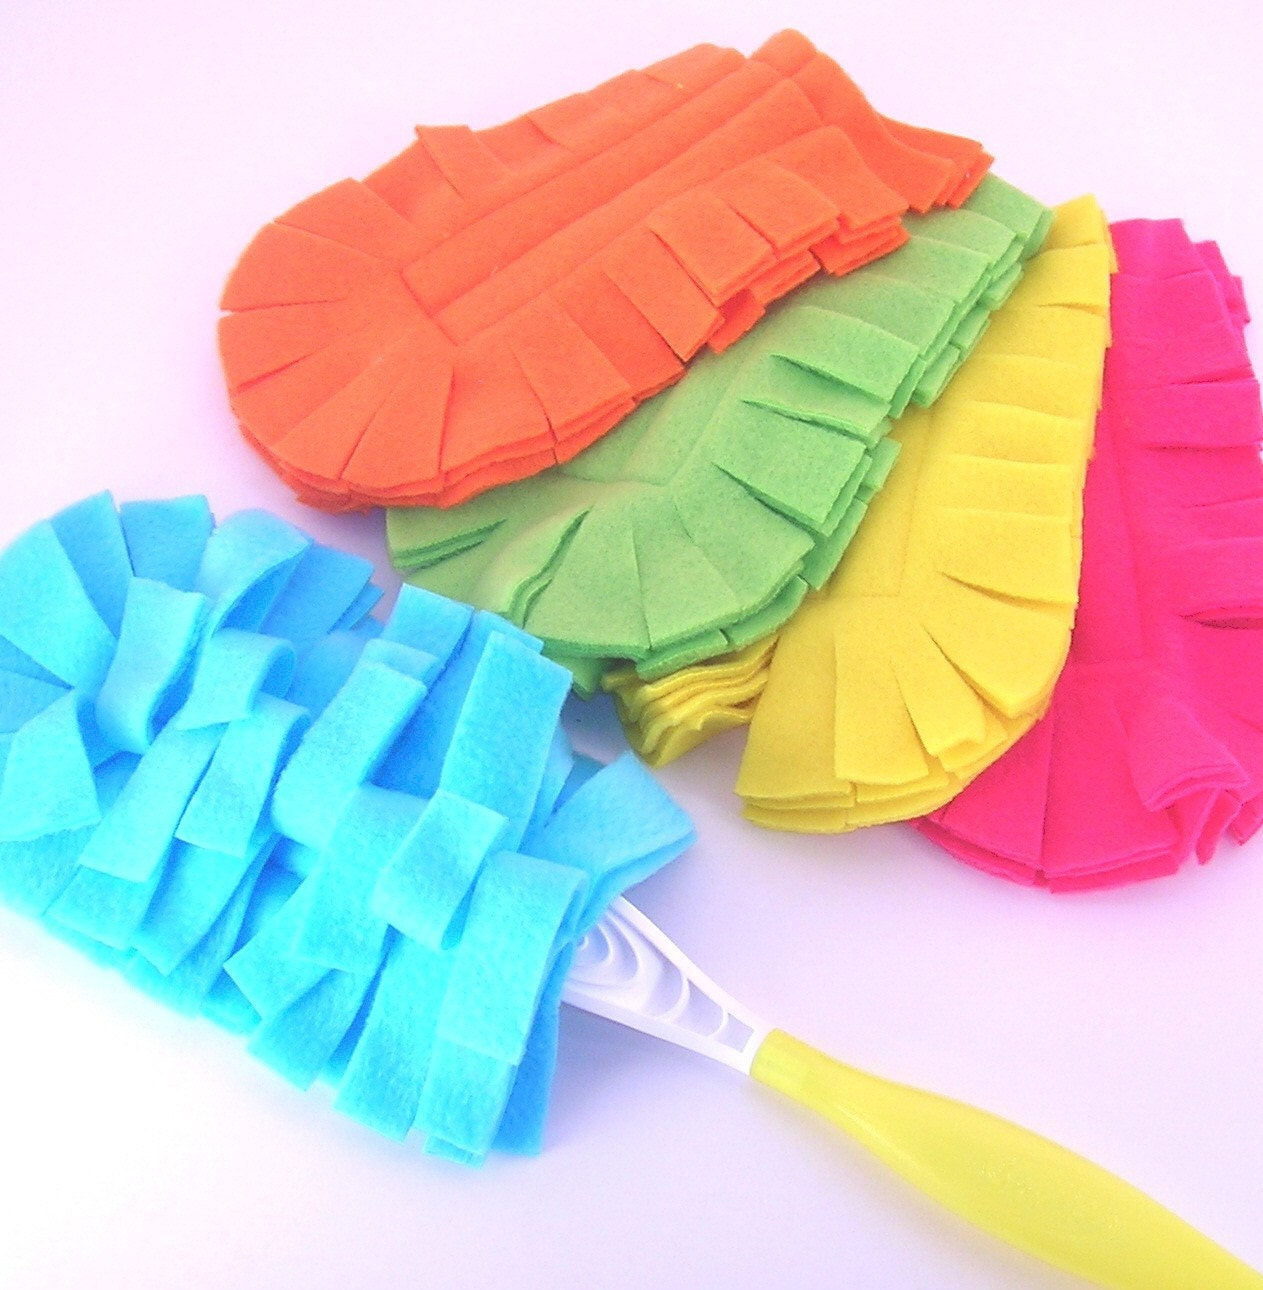 Swiffer Fleece Washable Hand Duster Refill, Set of 2, You Pick the Color